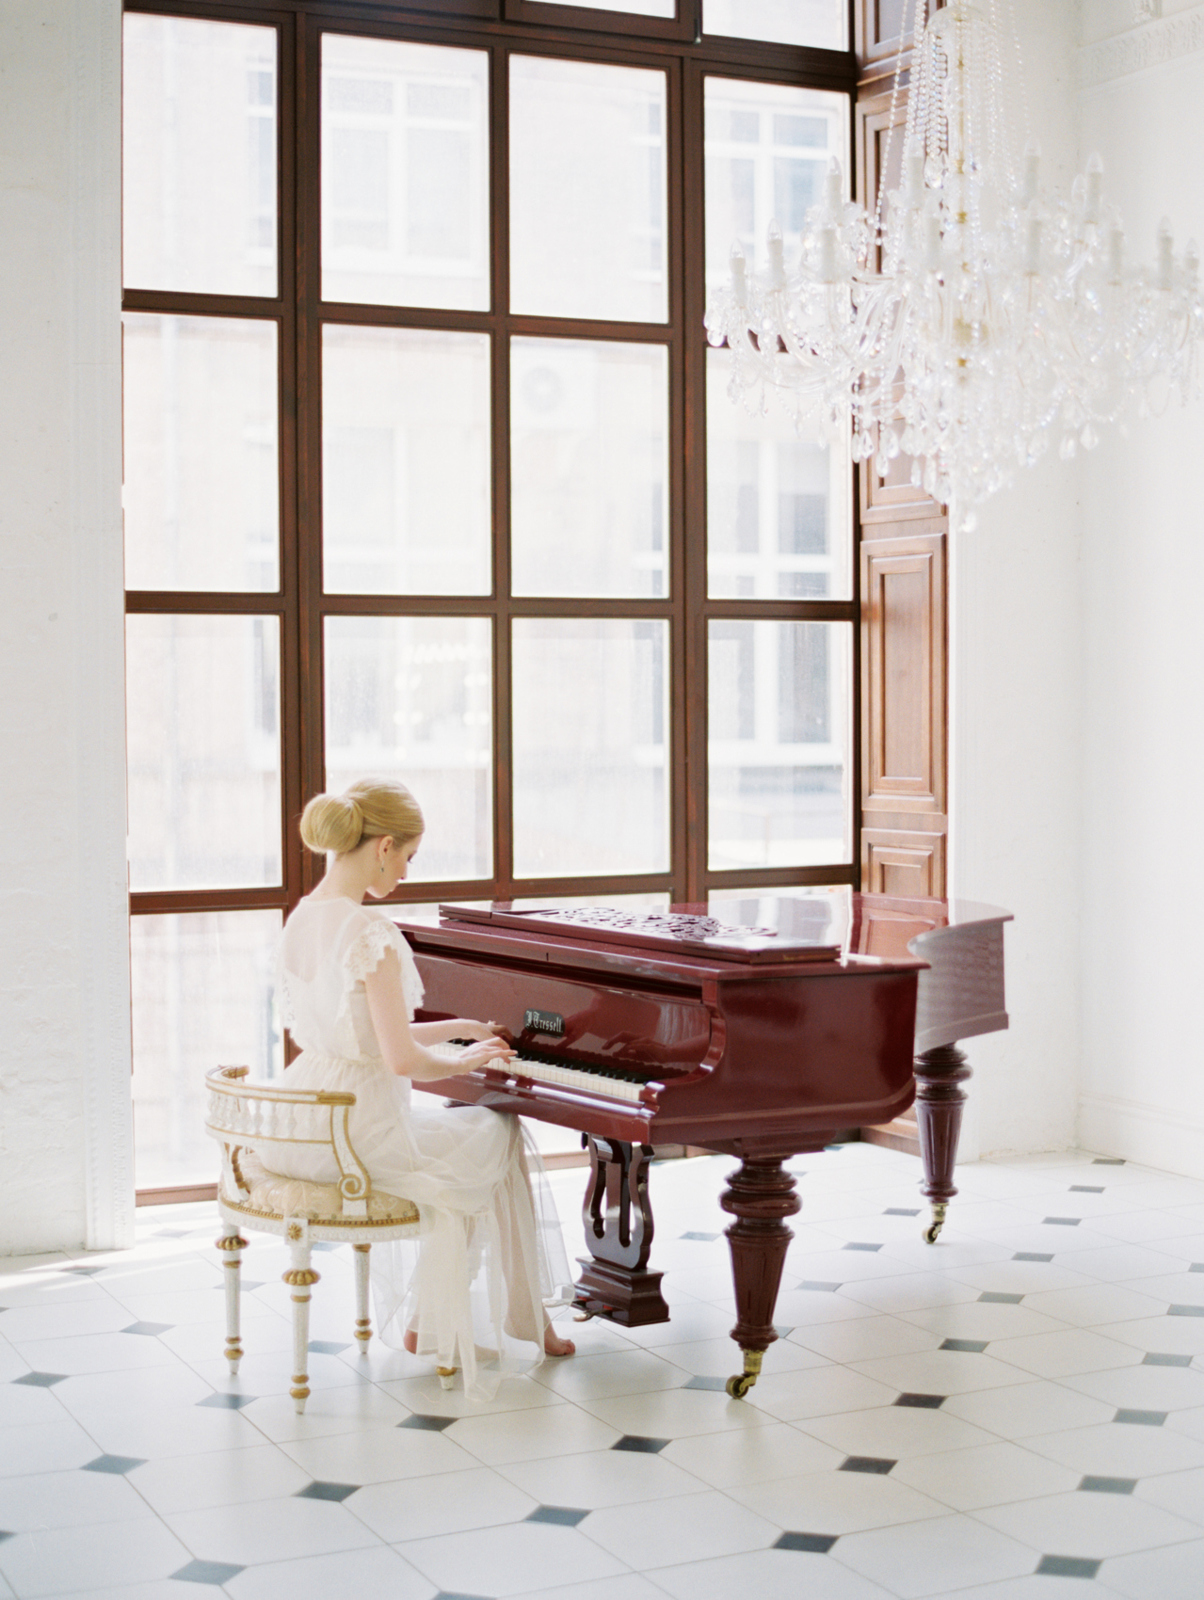 Brides plays the piano